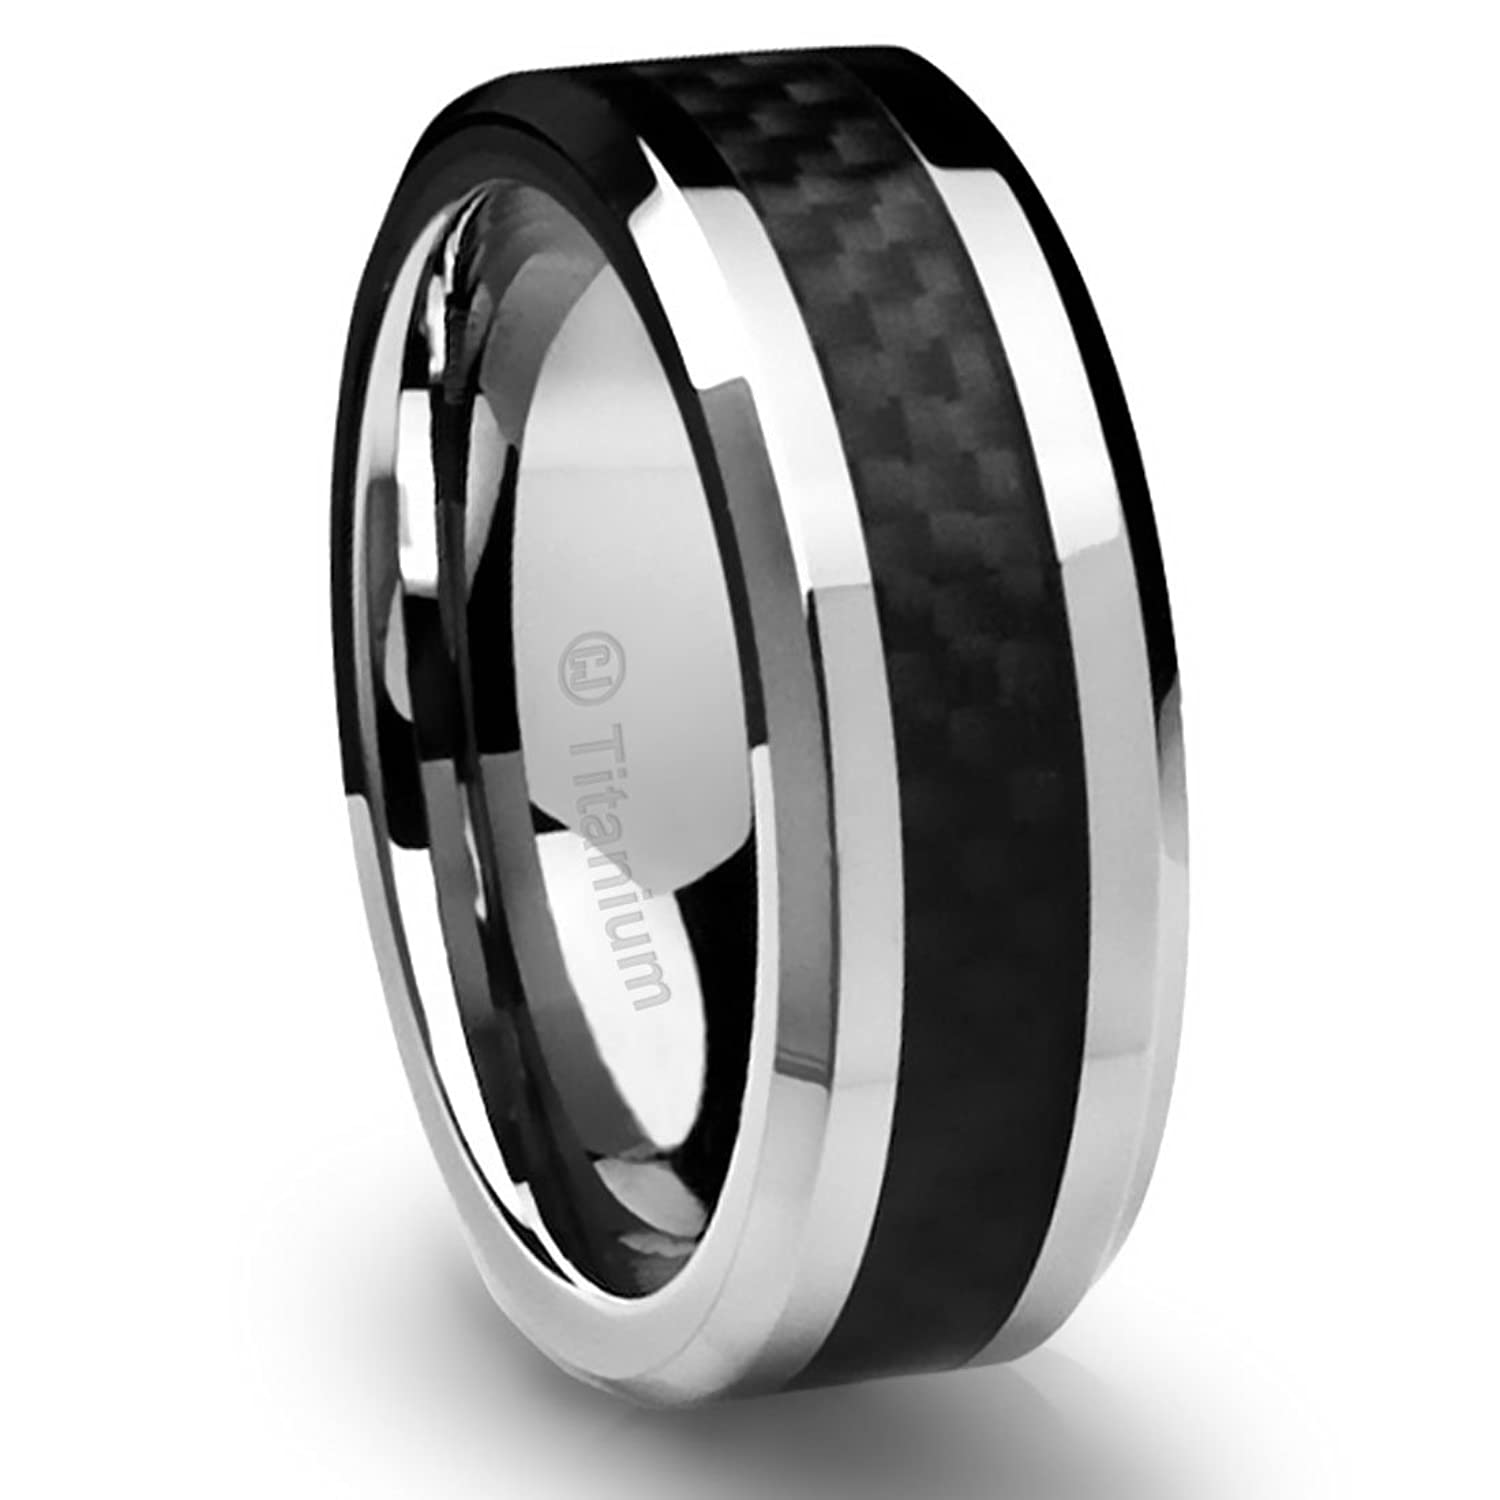 8MM Menu0027s Titanium Ring Wedding Band Black Carbon Fiber Inlay And Beveled  Edges | Amazon.com